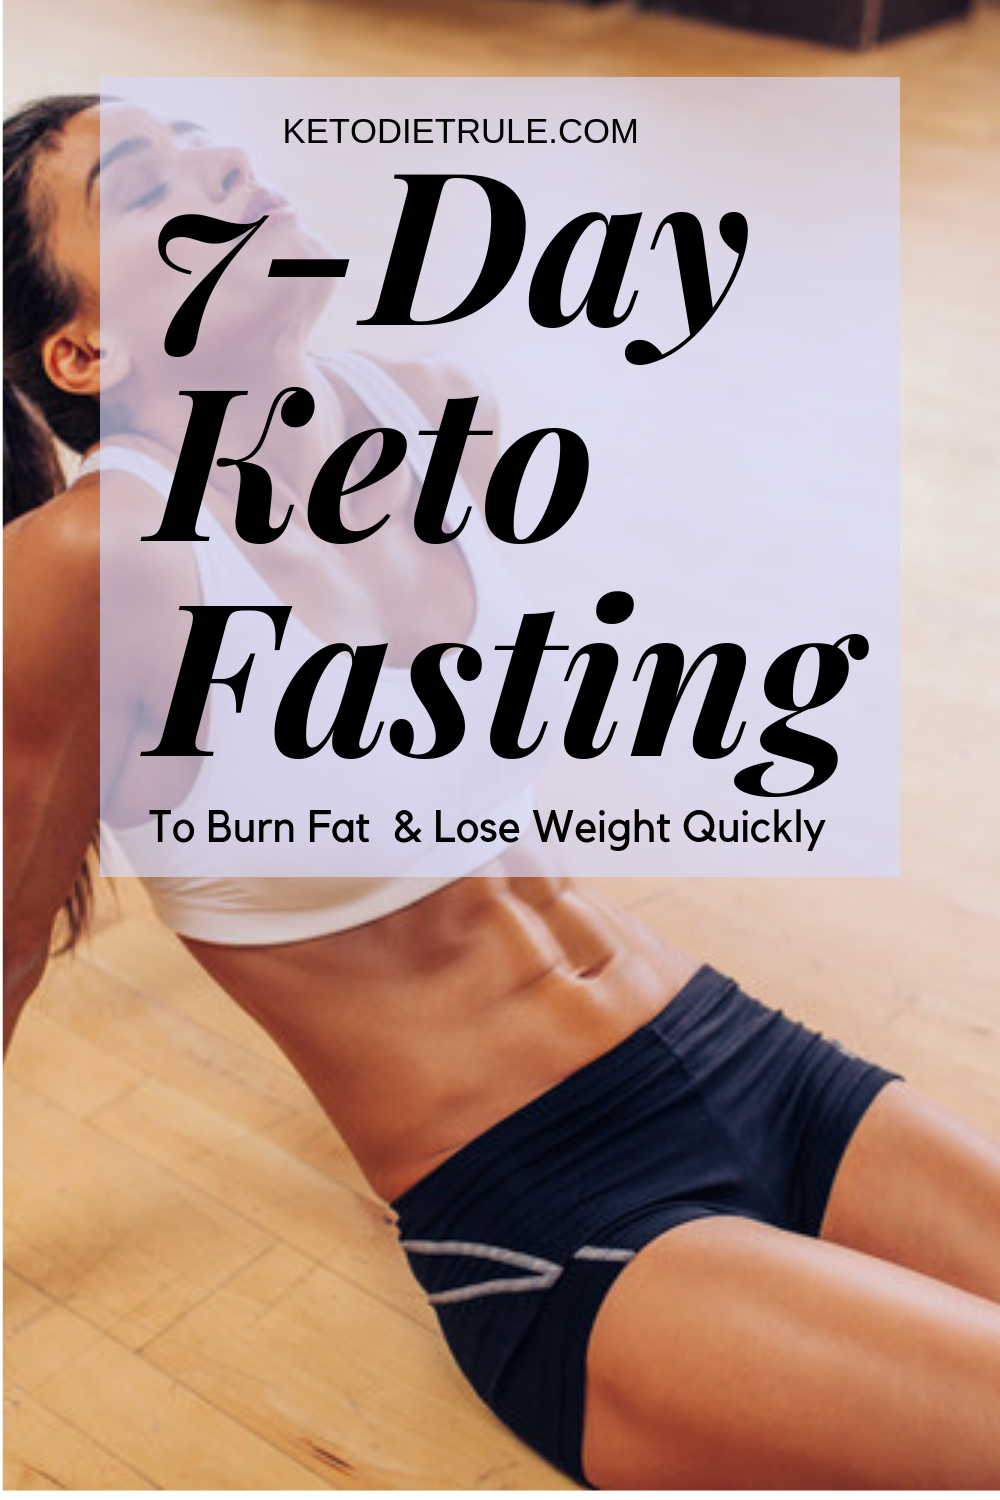 7-day intermittent fasting and keto meal plan + fasting schedule to reach ketosis faster and lose we...